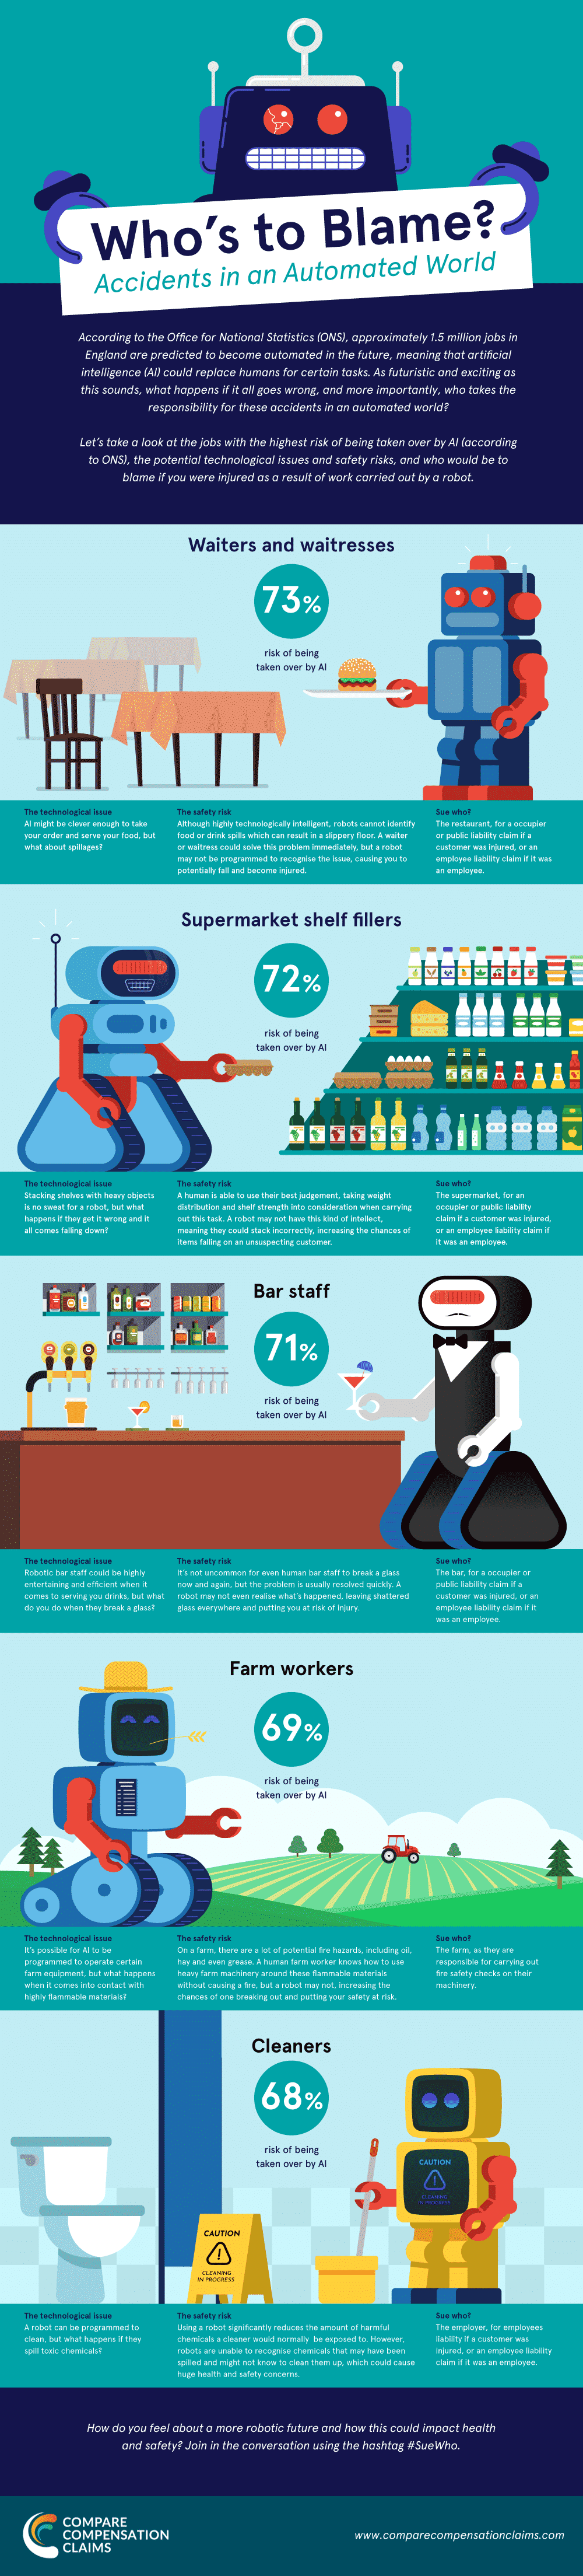 Infographic - Who's to blame for accidents in an automated world?